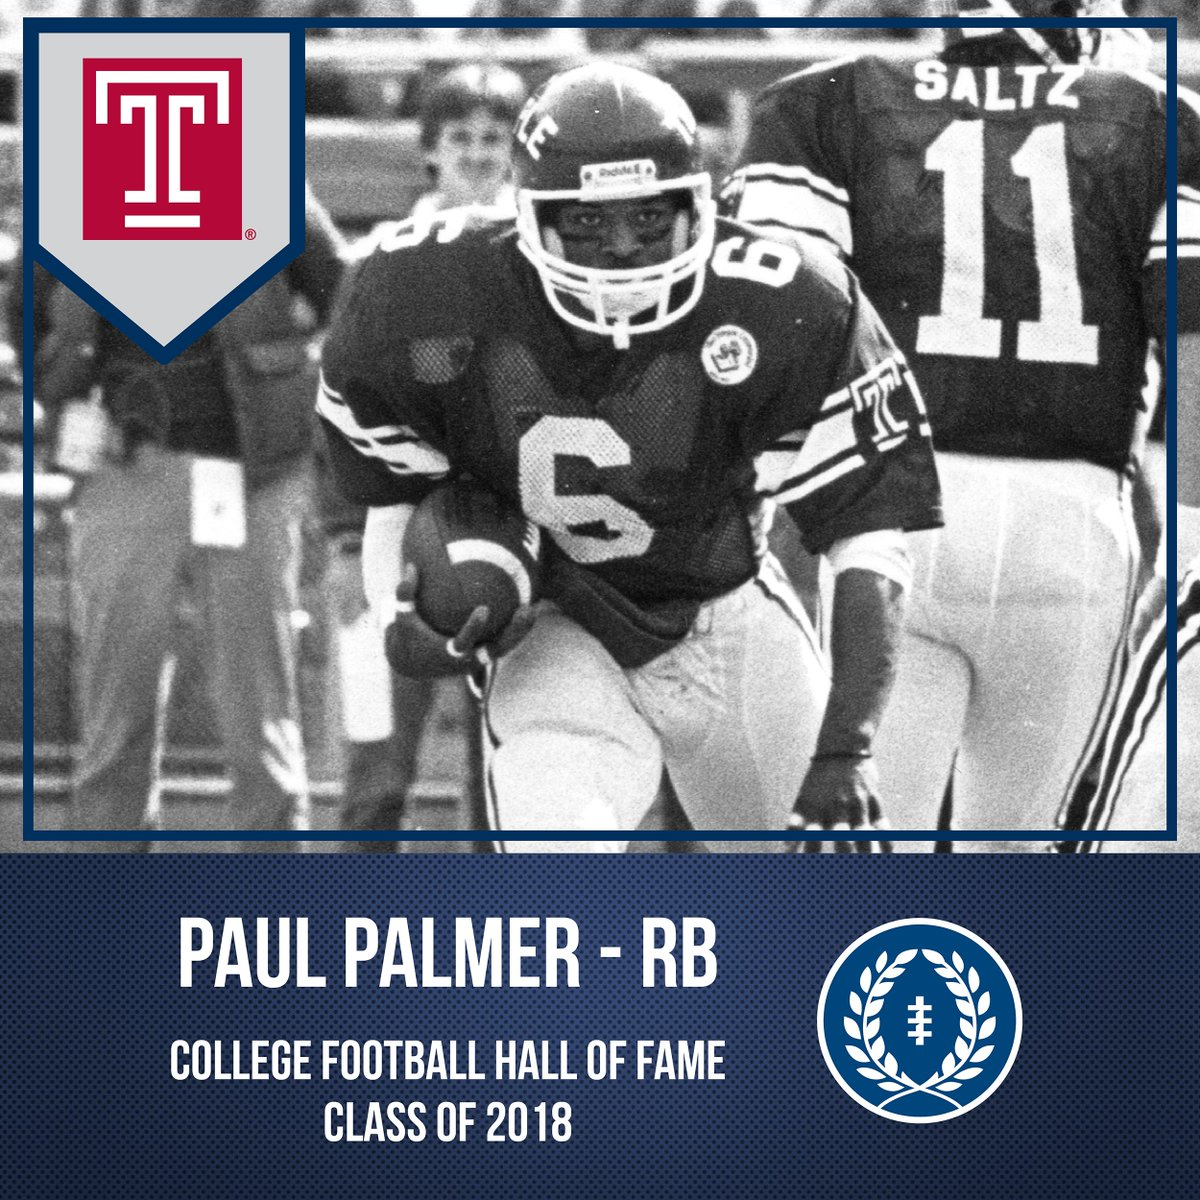 Alumni Paul Palmer to Enter College Football Hall of Fame